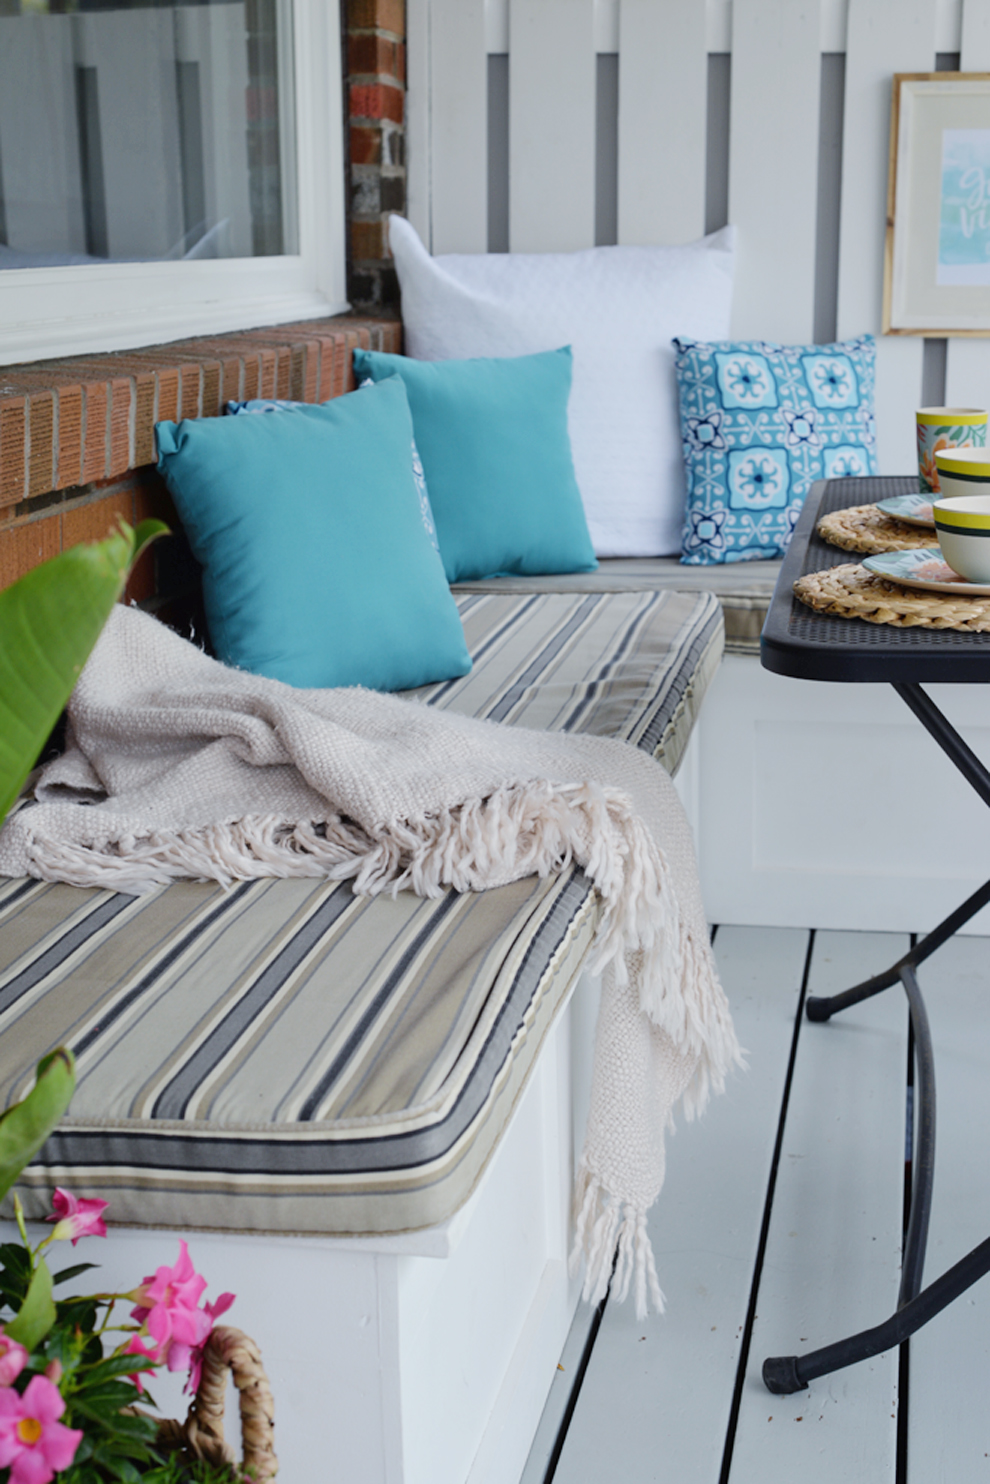 Rambling Renovators | tropical decor, outdoor decor, blue white rattan decor